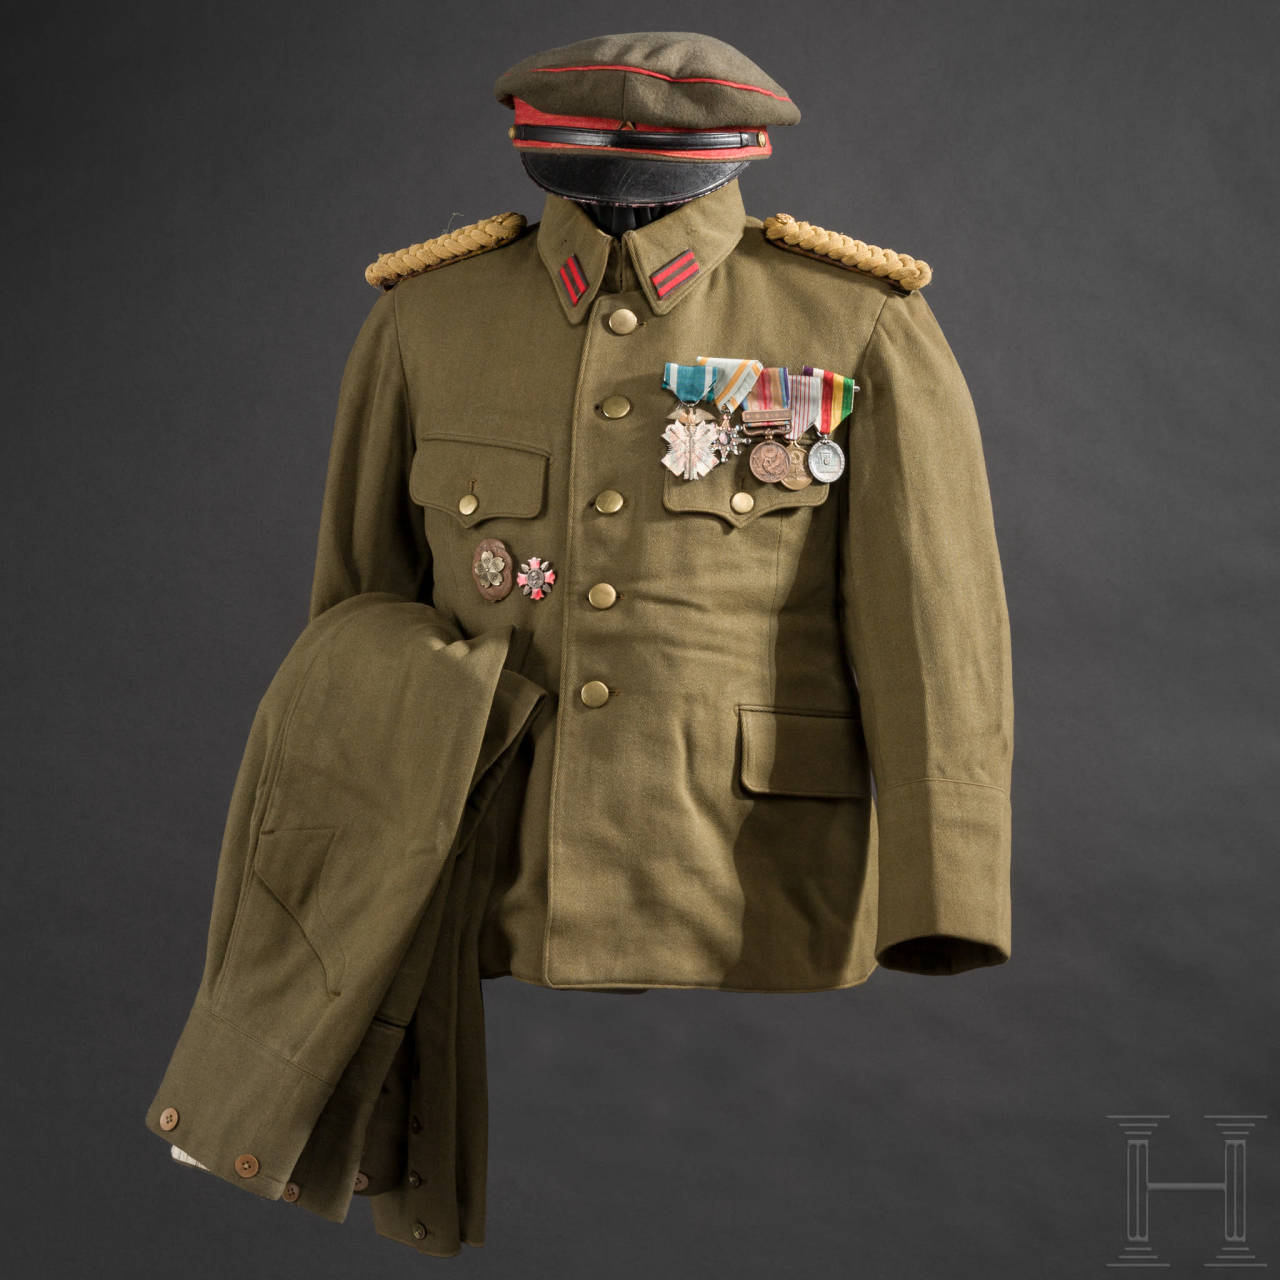 A uniform ensemble for officers of the Imperial Japanese Army in World War II